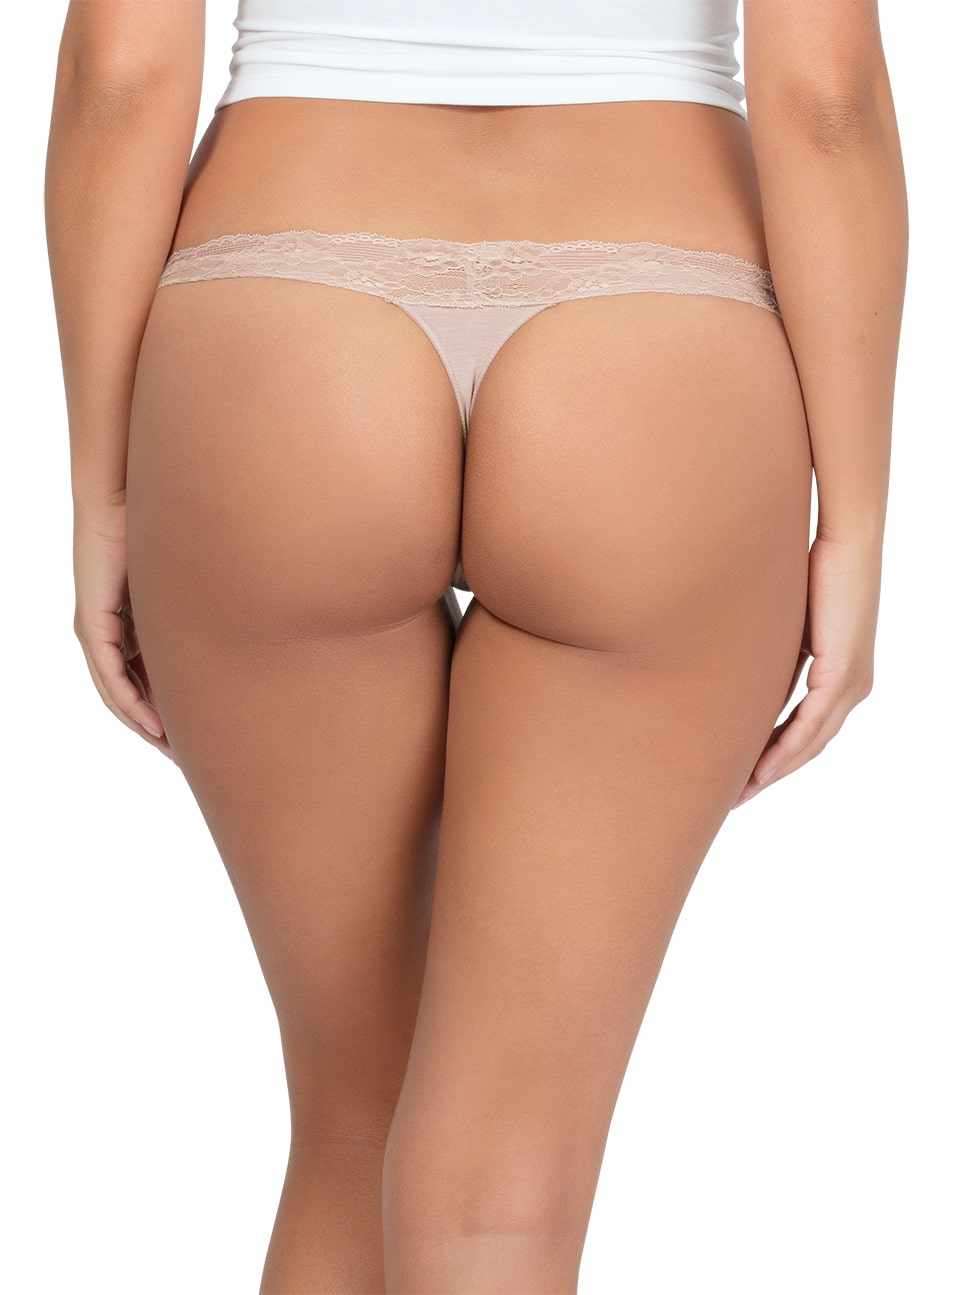 PARFAIT ParfaitPanty SoEssential ThongPP403 Bare Back - Parfait Panty So Essential Thong- Bare - PP403